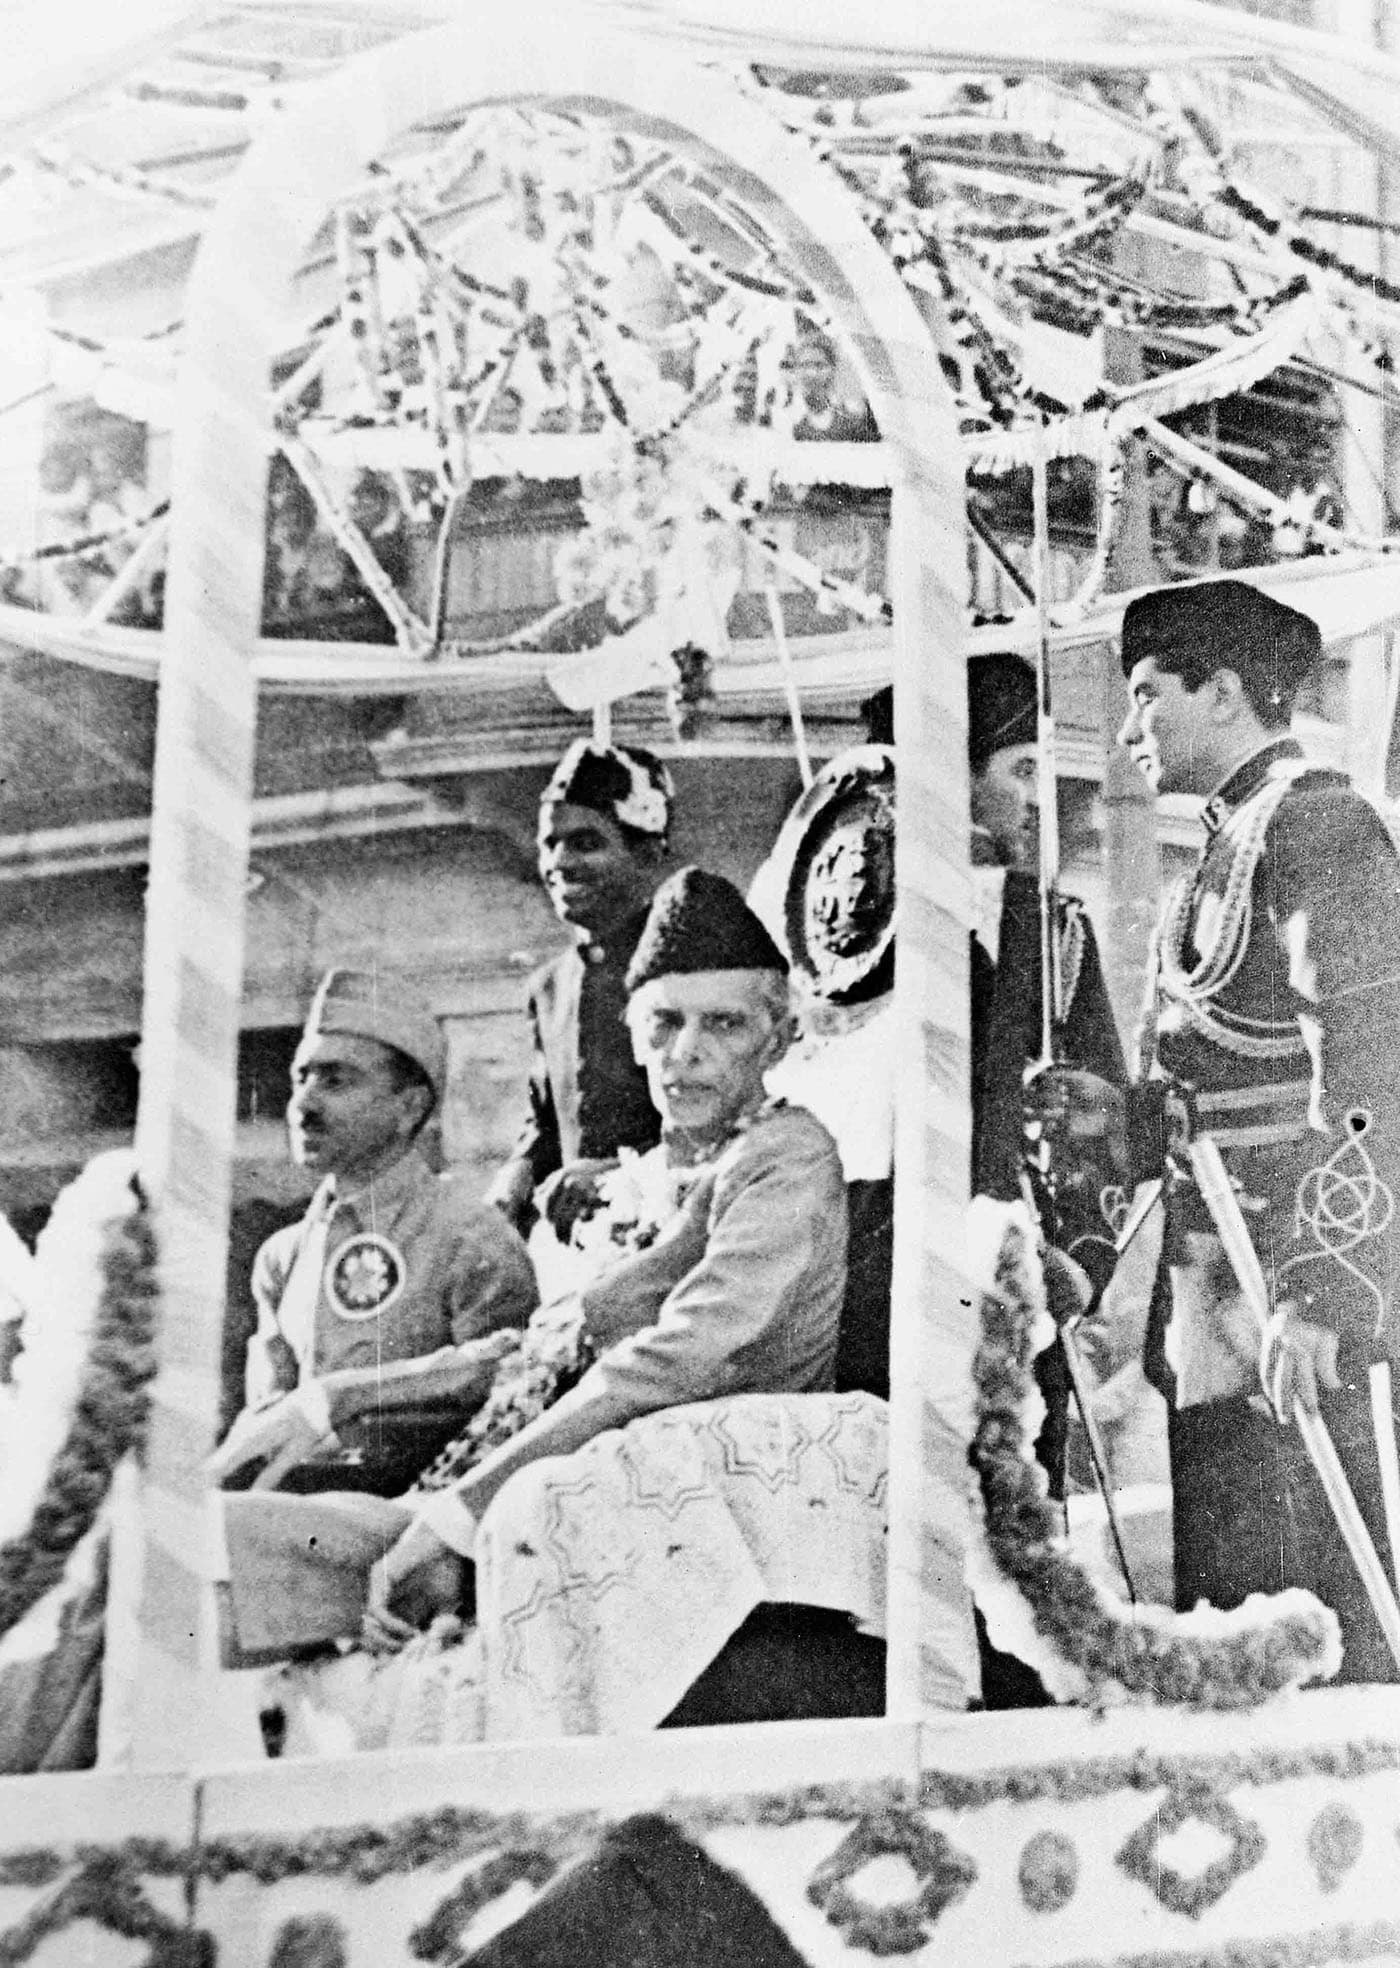 The Quaid-i-Azam, Mohammad Ali Jinnah and G.M. Syed make their way in a triumphal procession to the Annual Session of the Muslim League in Karachi in December 1943. — Courtesy National Archives Islamabad